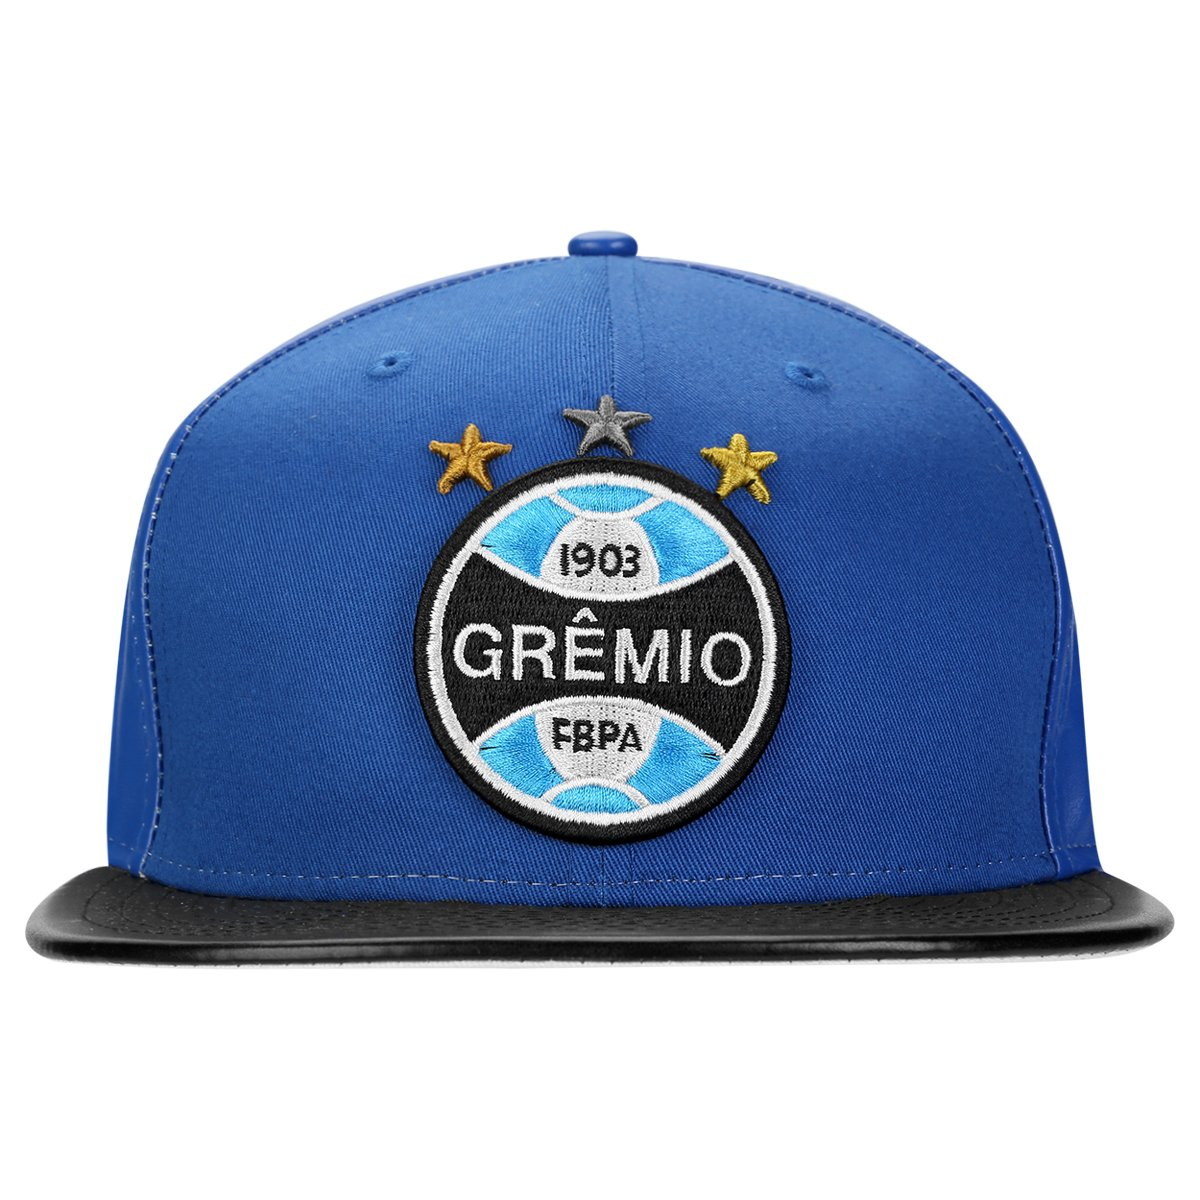 9a0e09655b417 Boné New Era 1903 Grêmio Aba Reta 9FIFTY